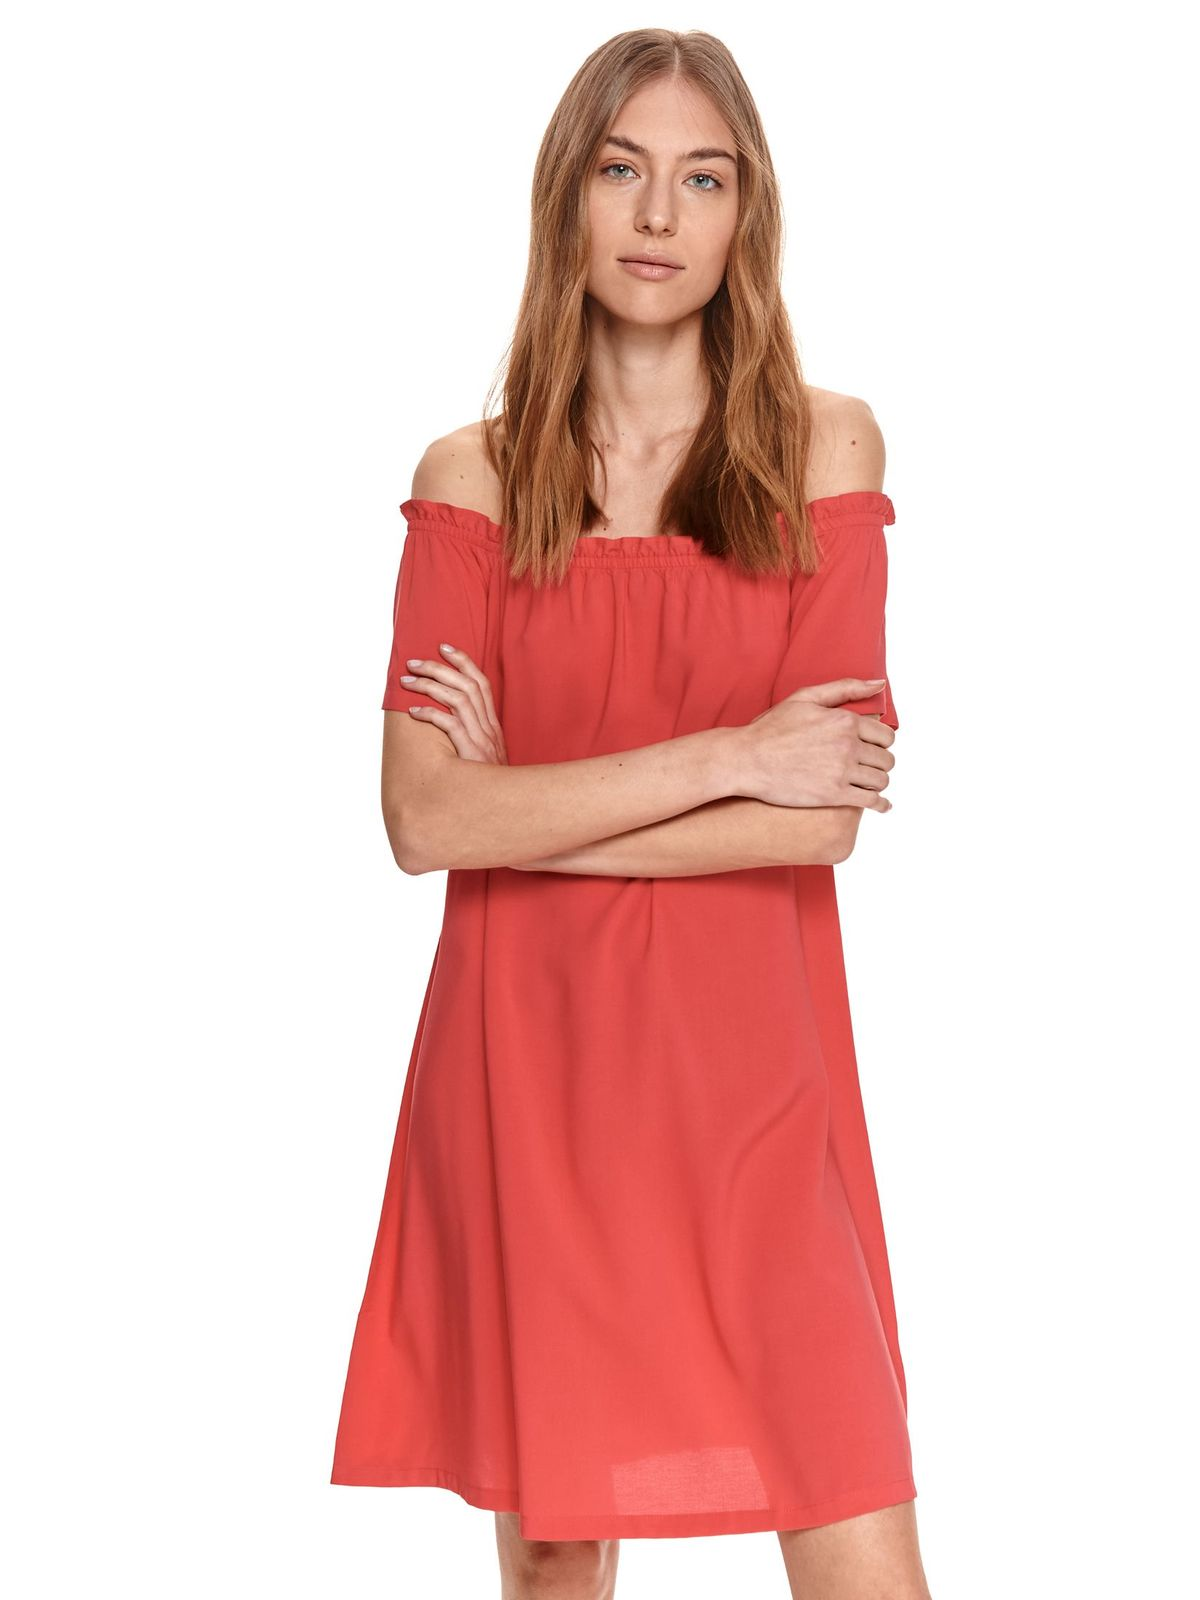 Pink dress airy fabric on the shoulders loose fit